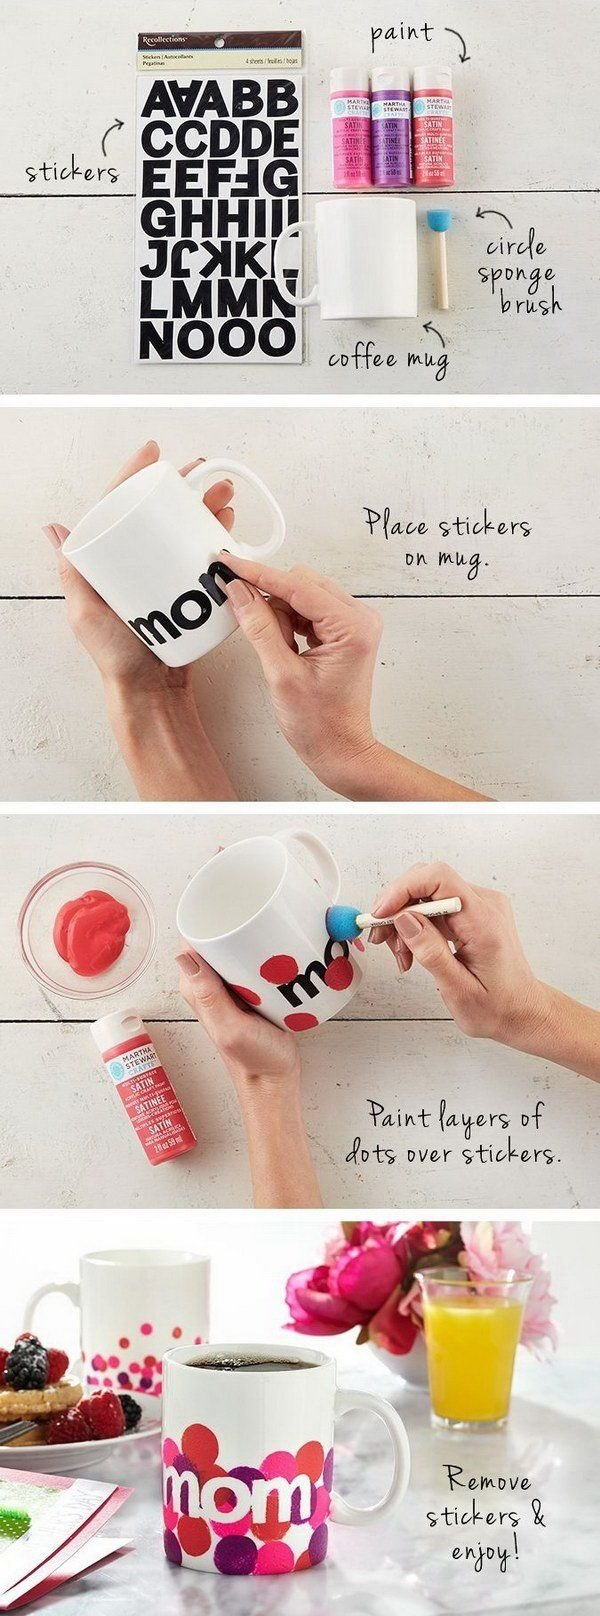 10 Ideal Christmas Gift Ideas For Mother In Law 80 best mothers day gift ideas images on pinterest mothers day 2